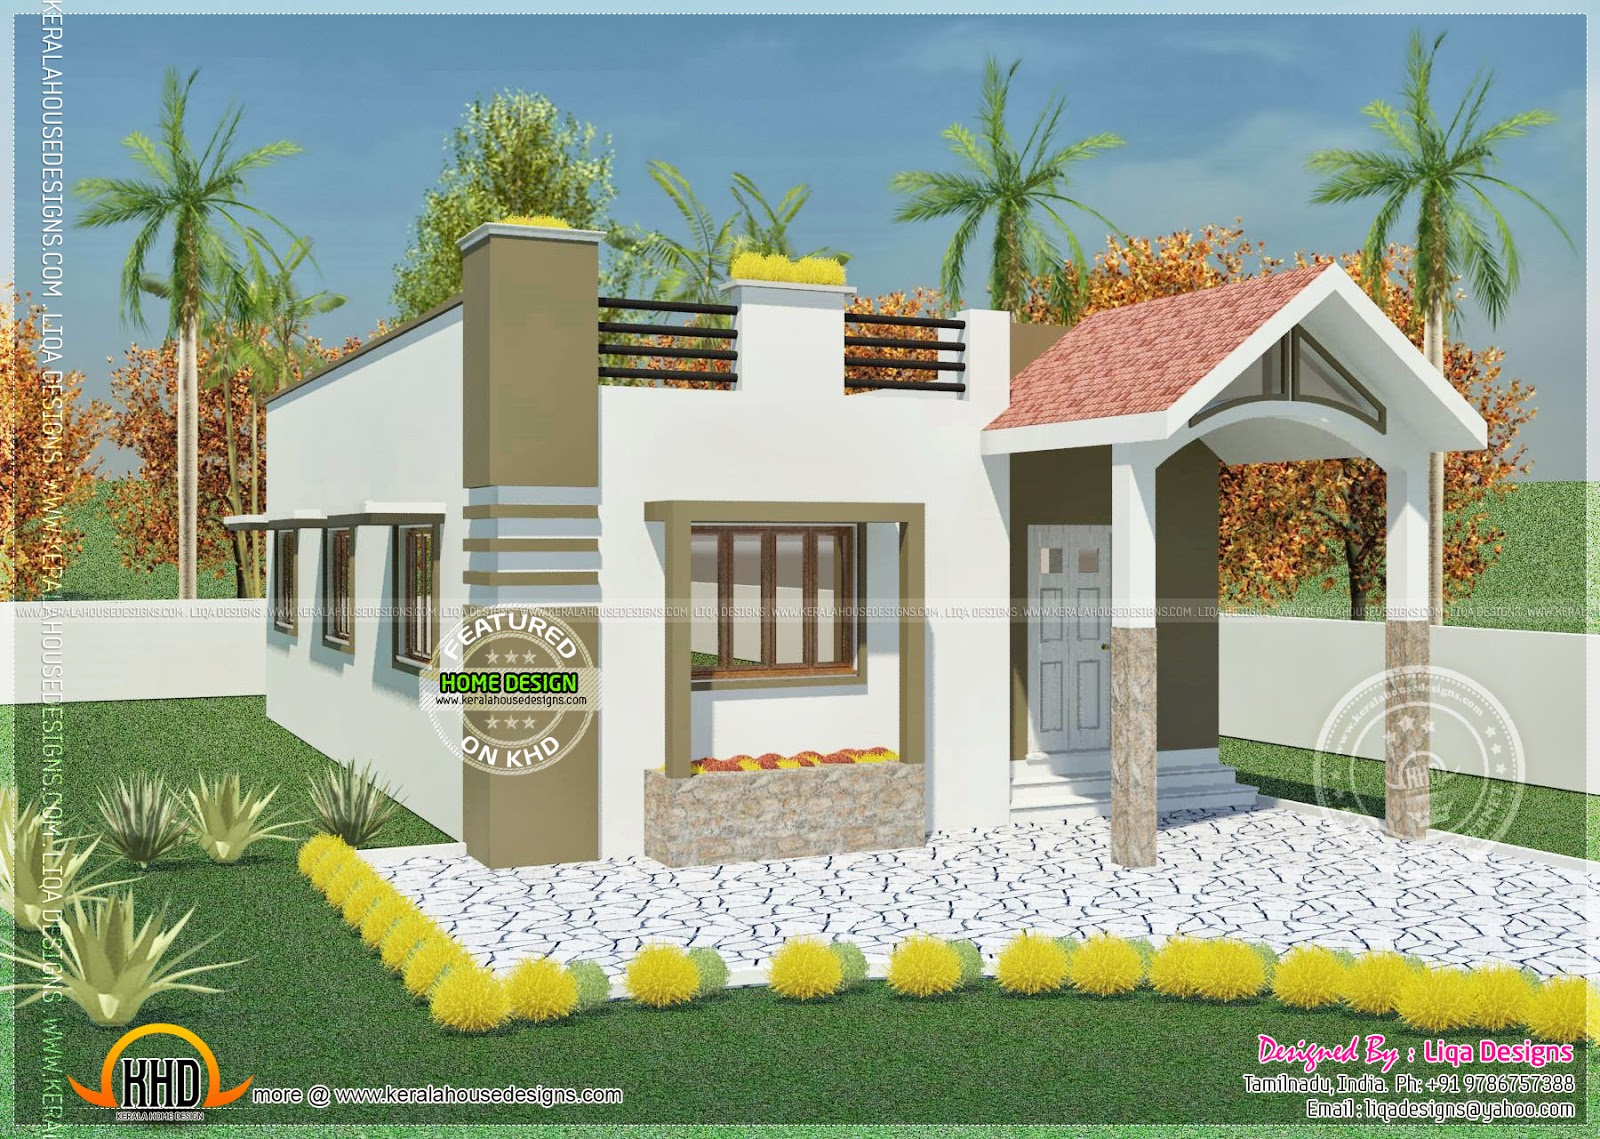 Tamilnadu style homes - House design plans